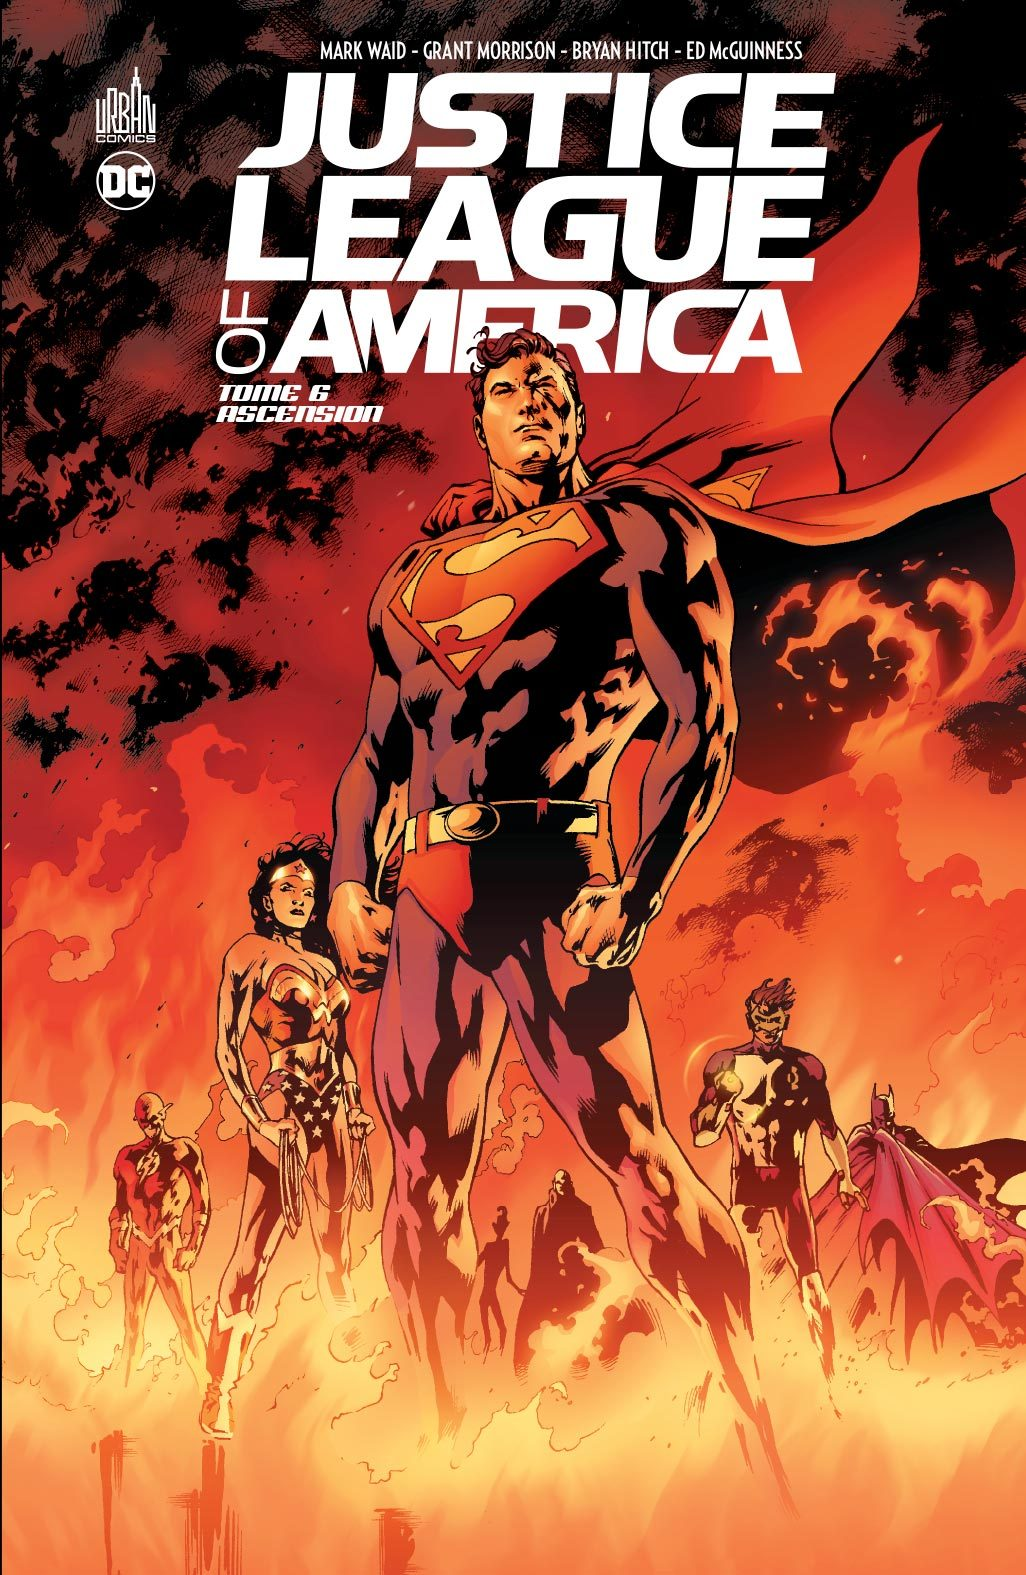 JUSTICE LEAGUE OF AMERICA TOME 6 - DC CLASSIQUES